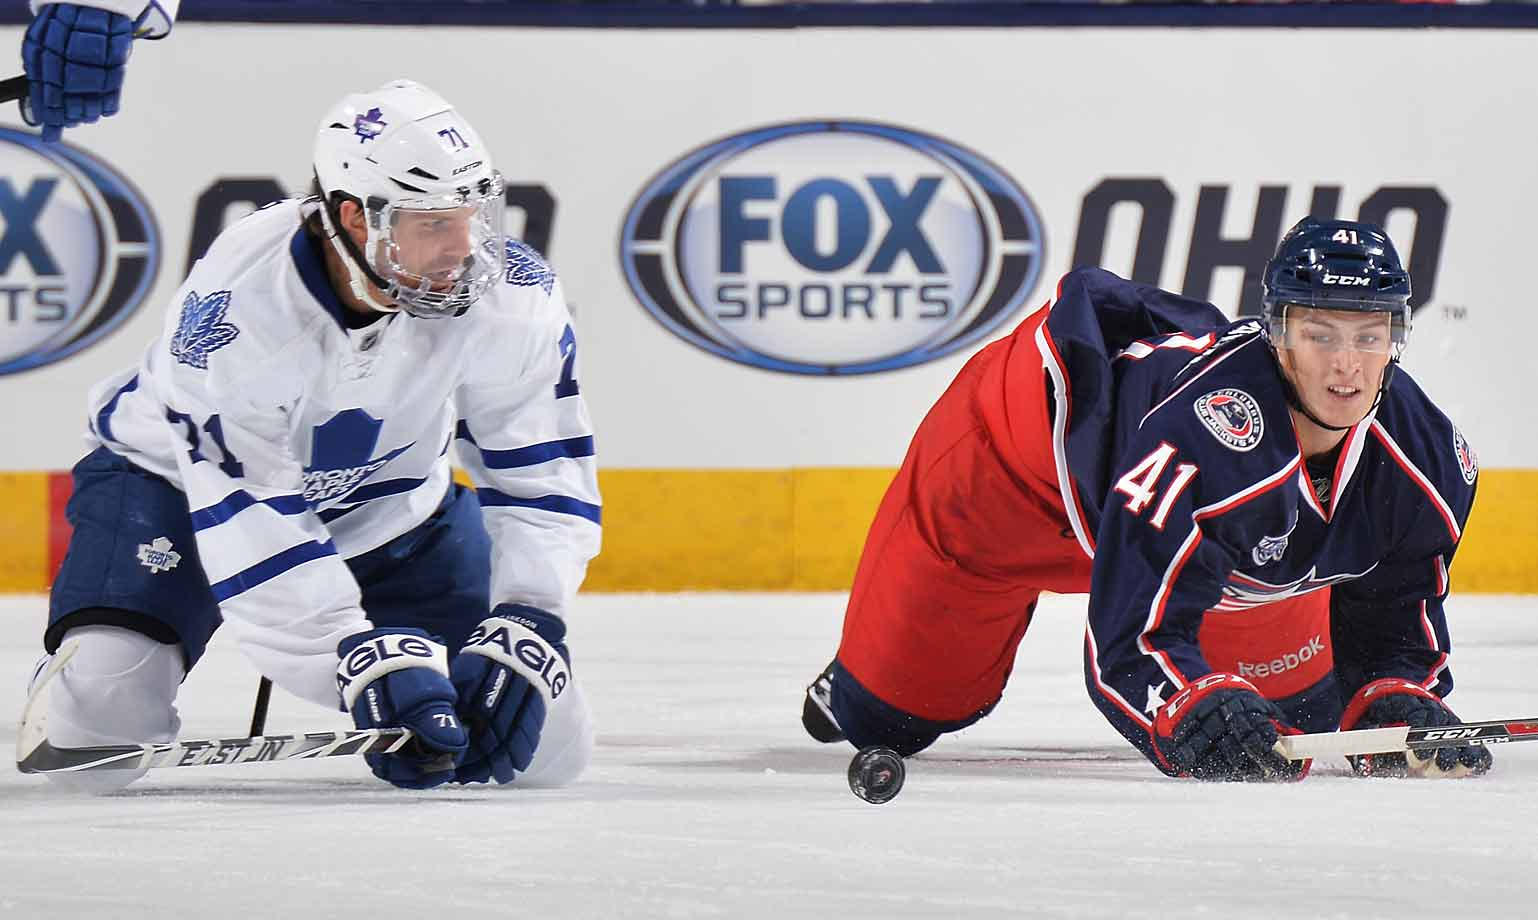 The Maple Leaf and Blue Jacket follow a loose puck during the second period at Nationwide Arena in Columbus on October 31, 2014.